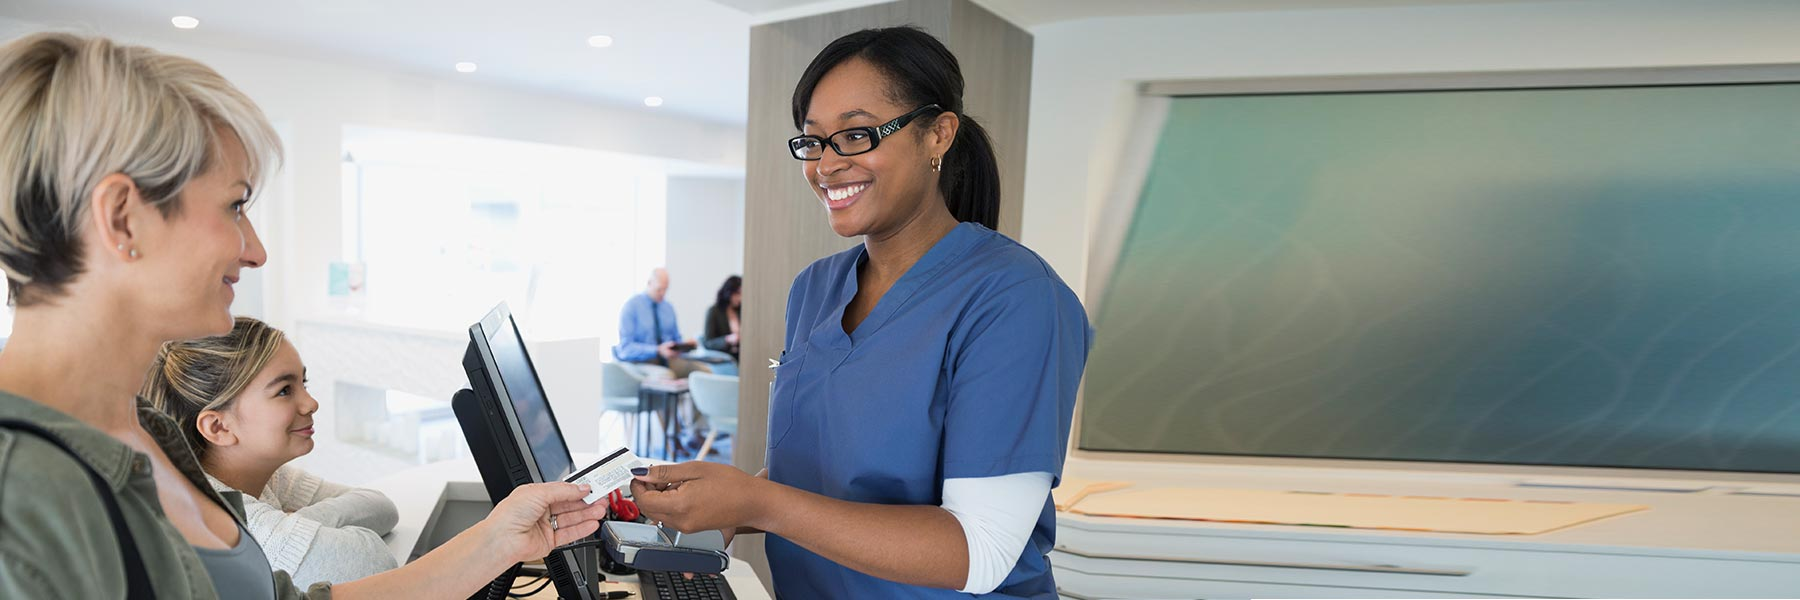 Healthcare practitioner in blue scrubs and black glasses at computer accepting credit card for payment from customer